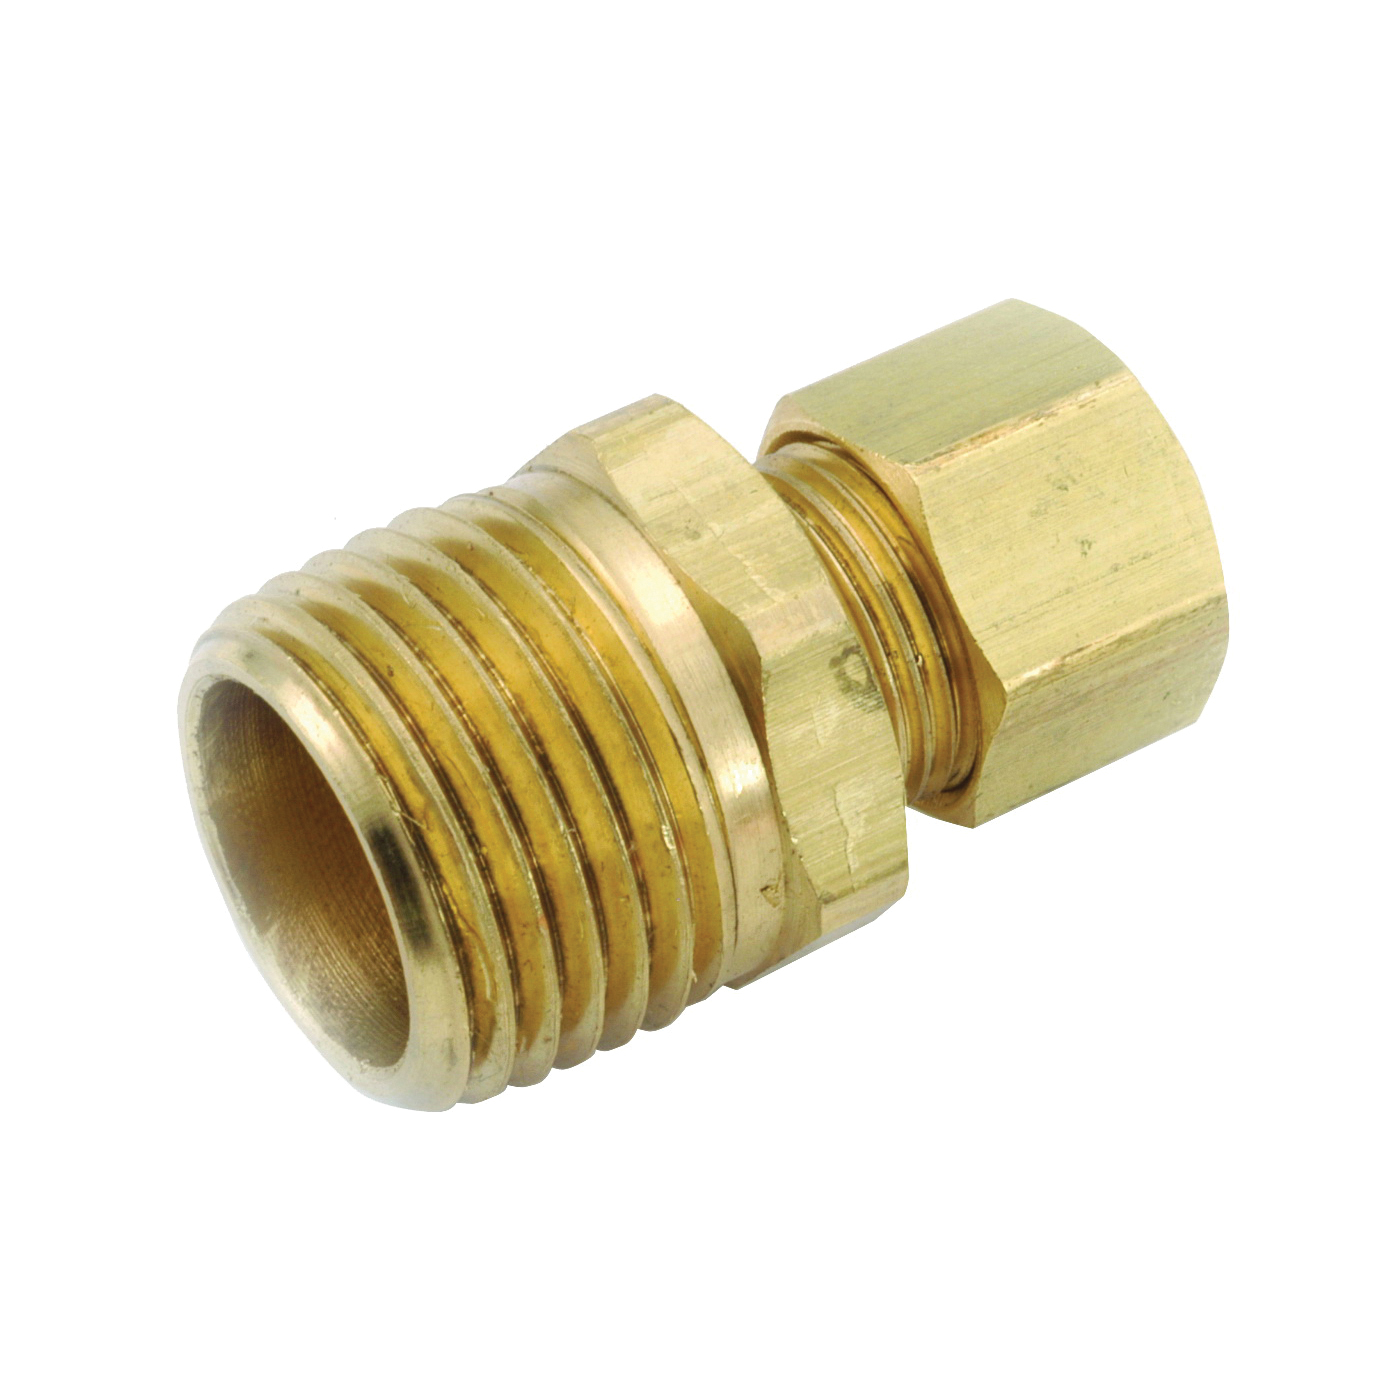 Picture of Anderson Metals 750068-0302 Connector, 3/16 in Compression, 1/8 in Male